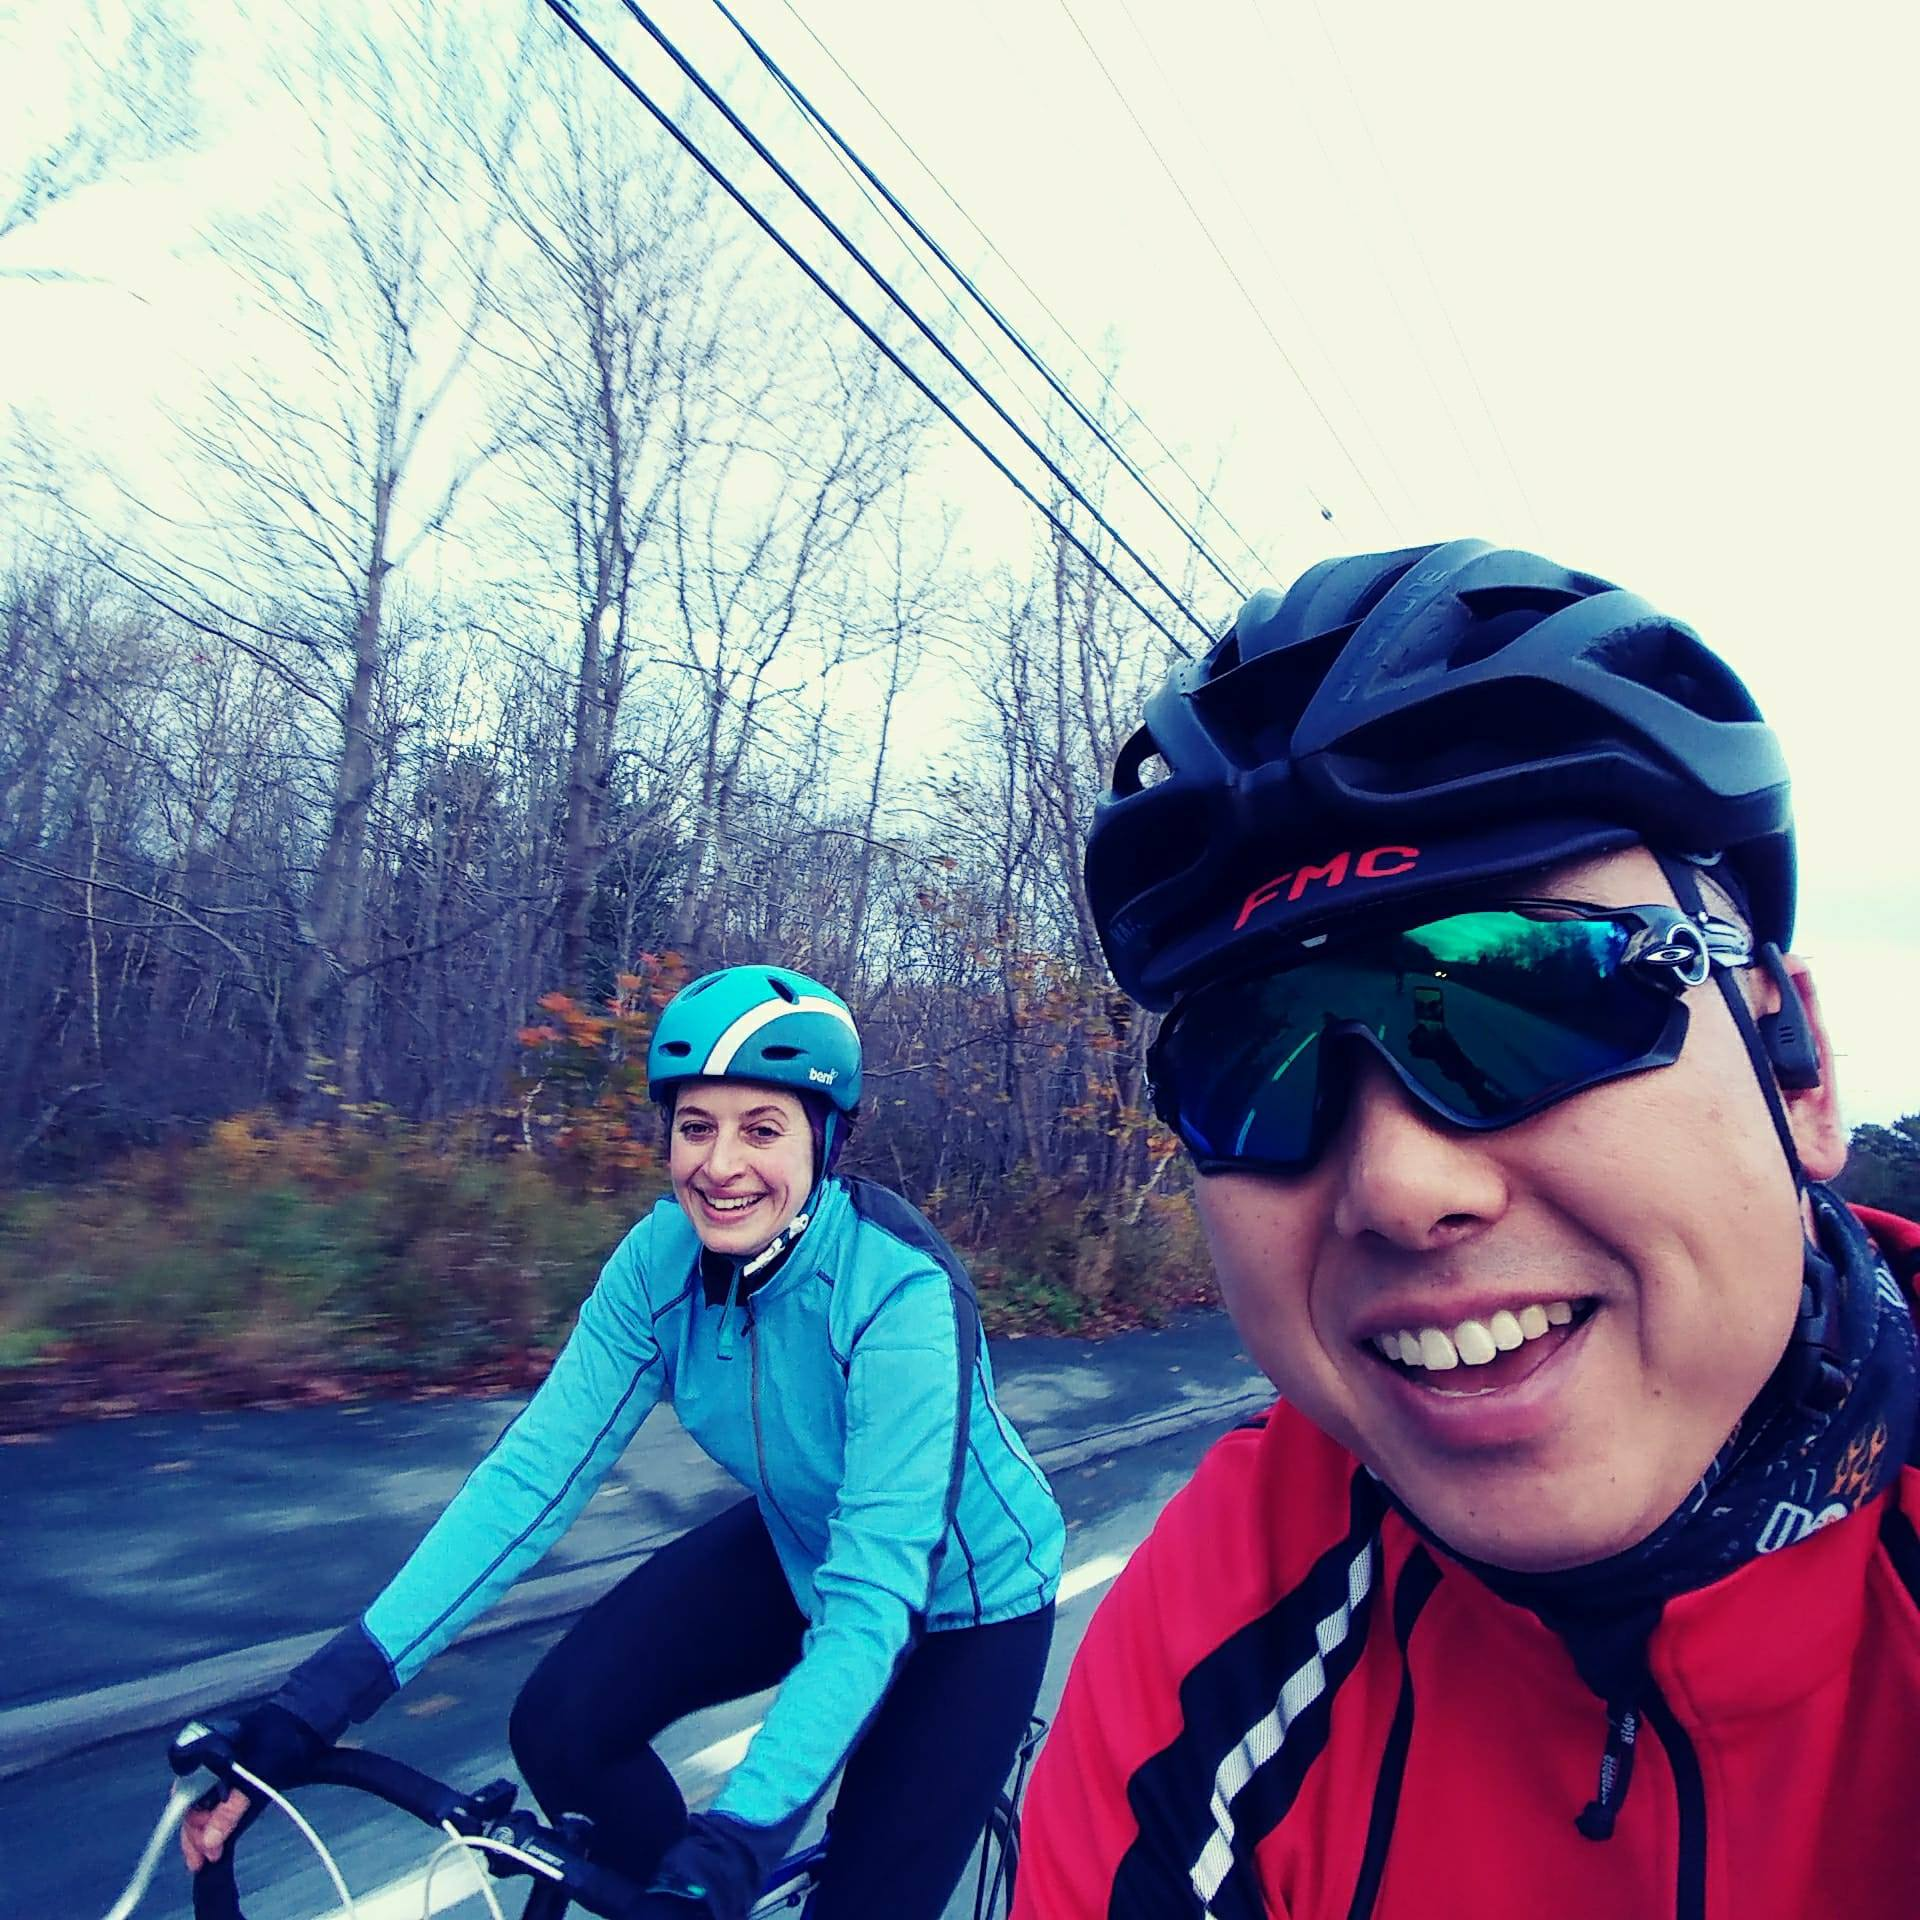 Lindsay Brin and VP Jason Lee take a bike ride through a Halifax on the last day of Big Data Congress 2017.